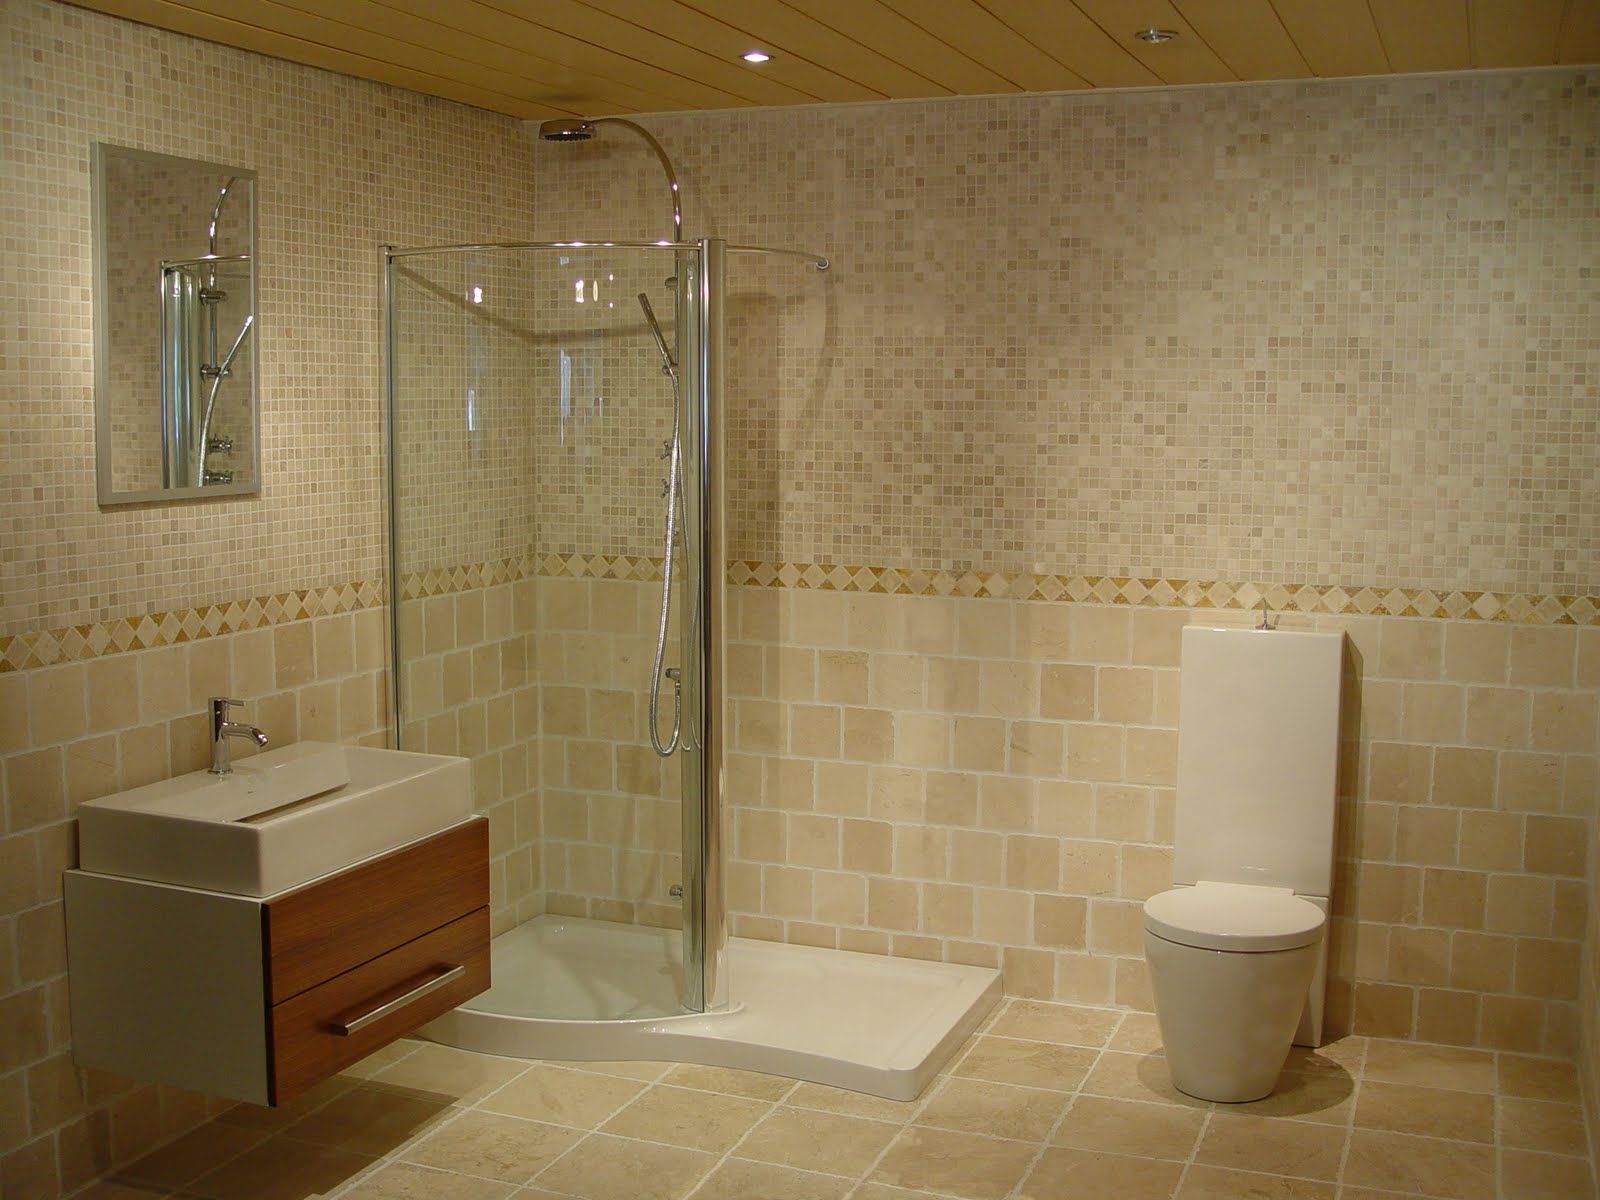 tiling ideas for bathroom